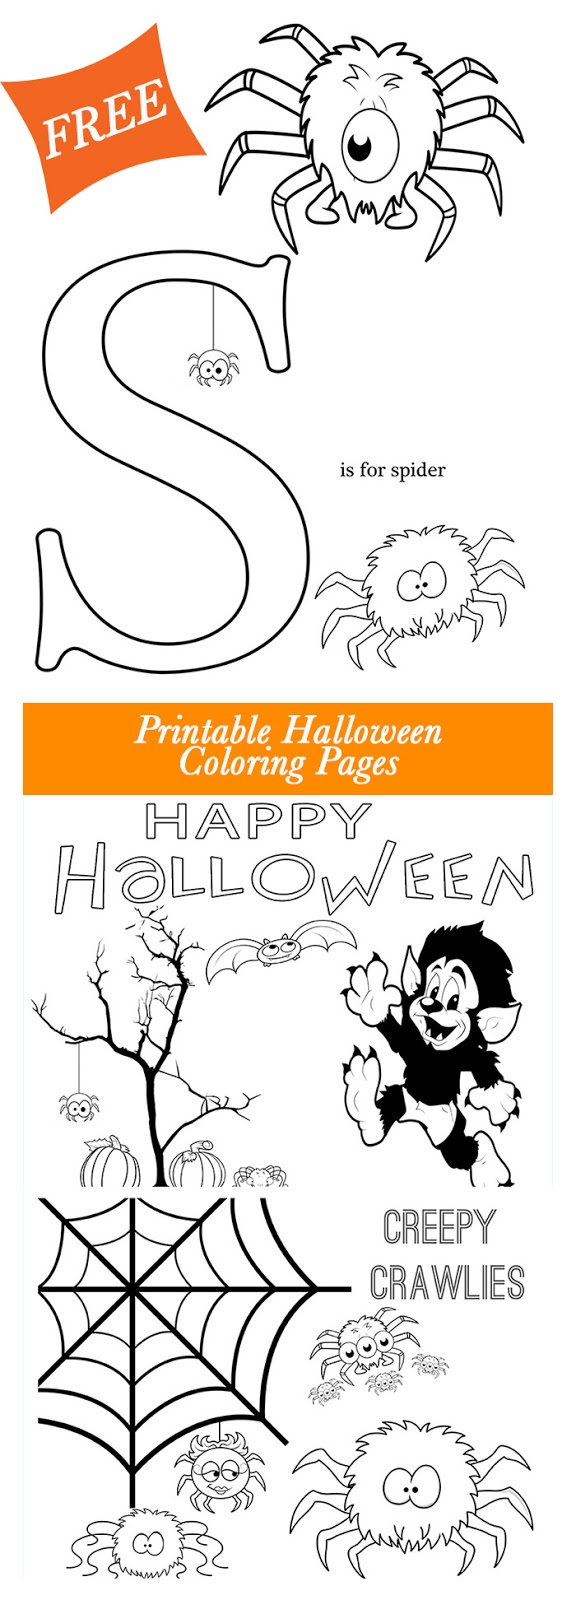 Get these free Halloween Printable coloring pages from Major Hoff Takes A Wife. Super cute pages feature friendly spiders, the letter S and a few other Halloween themed items. Enjoy!